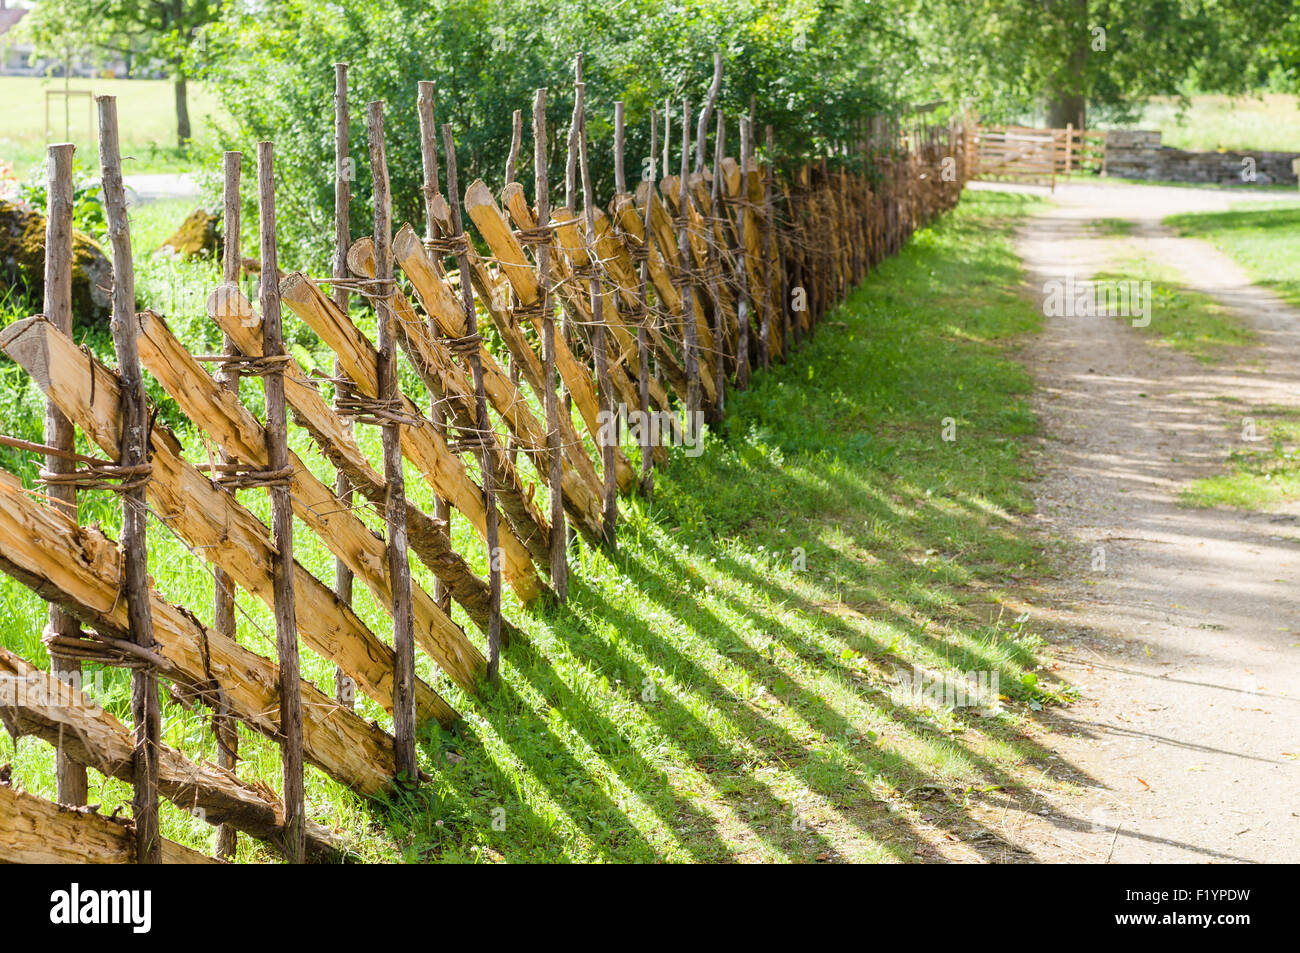 Wicker Fence Or Lath Near Country Road On Sunny Day Stock Photo